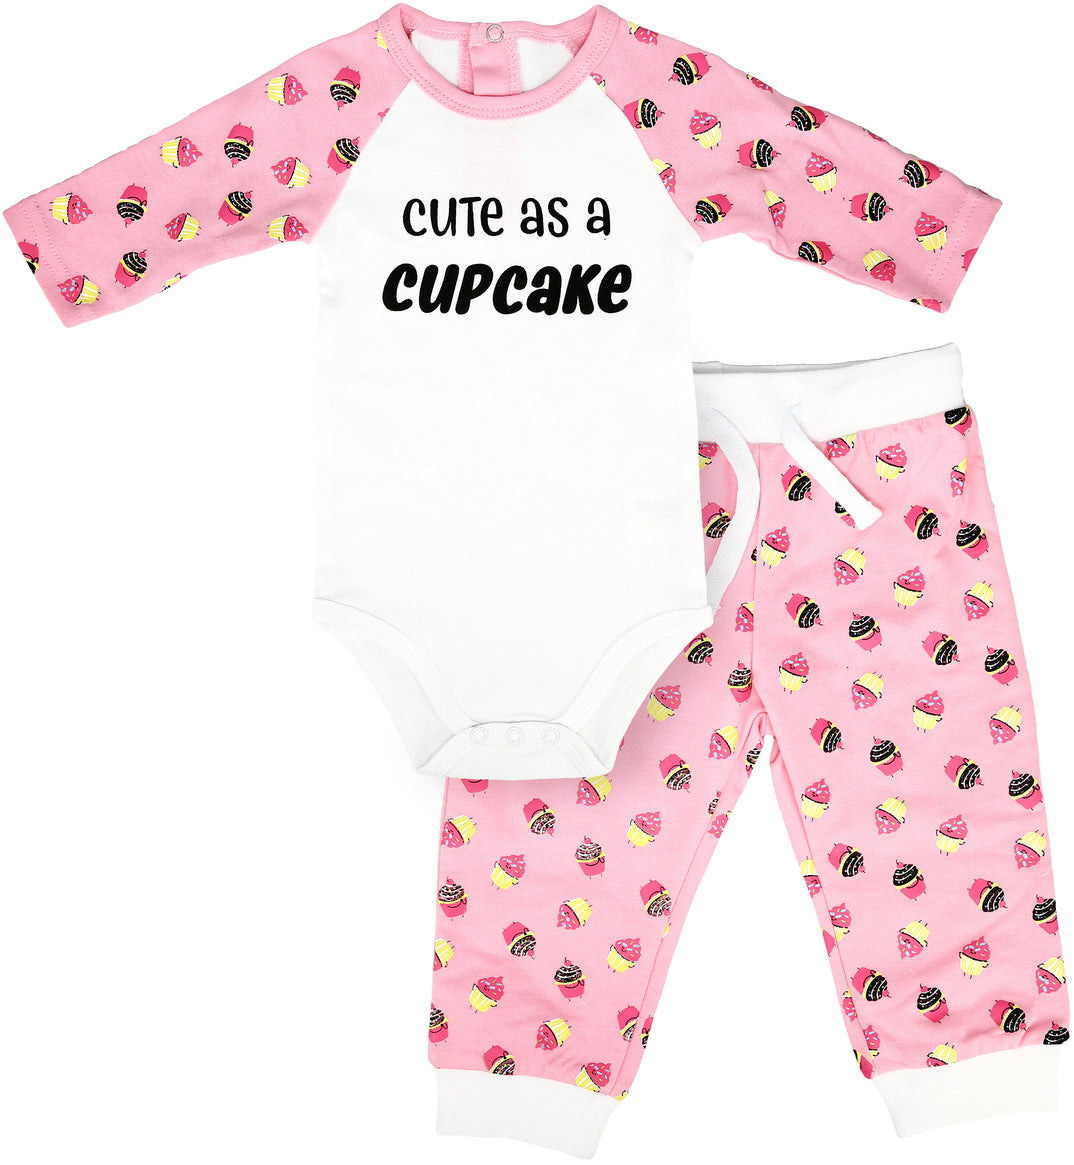 Baby Bodysuit & Pants Set